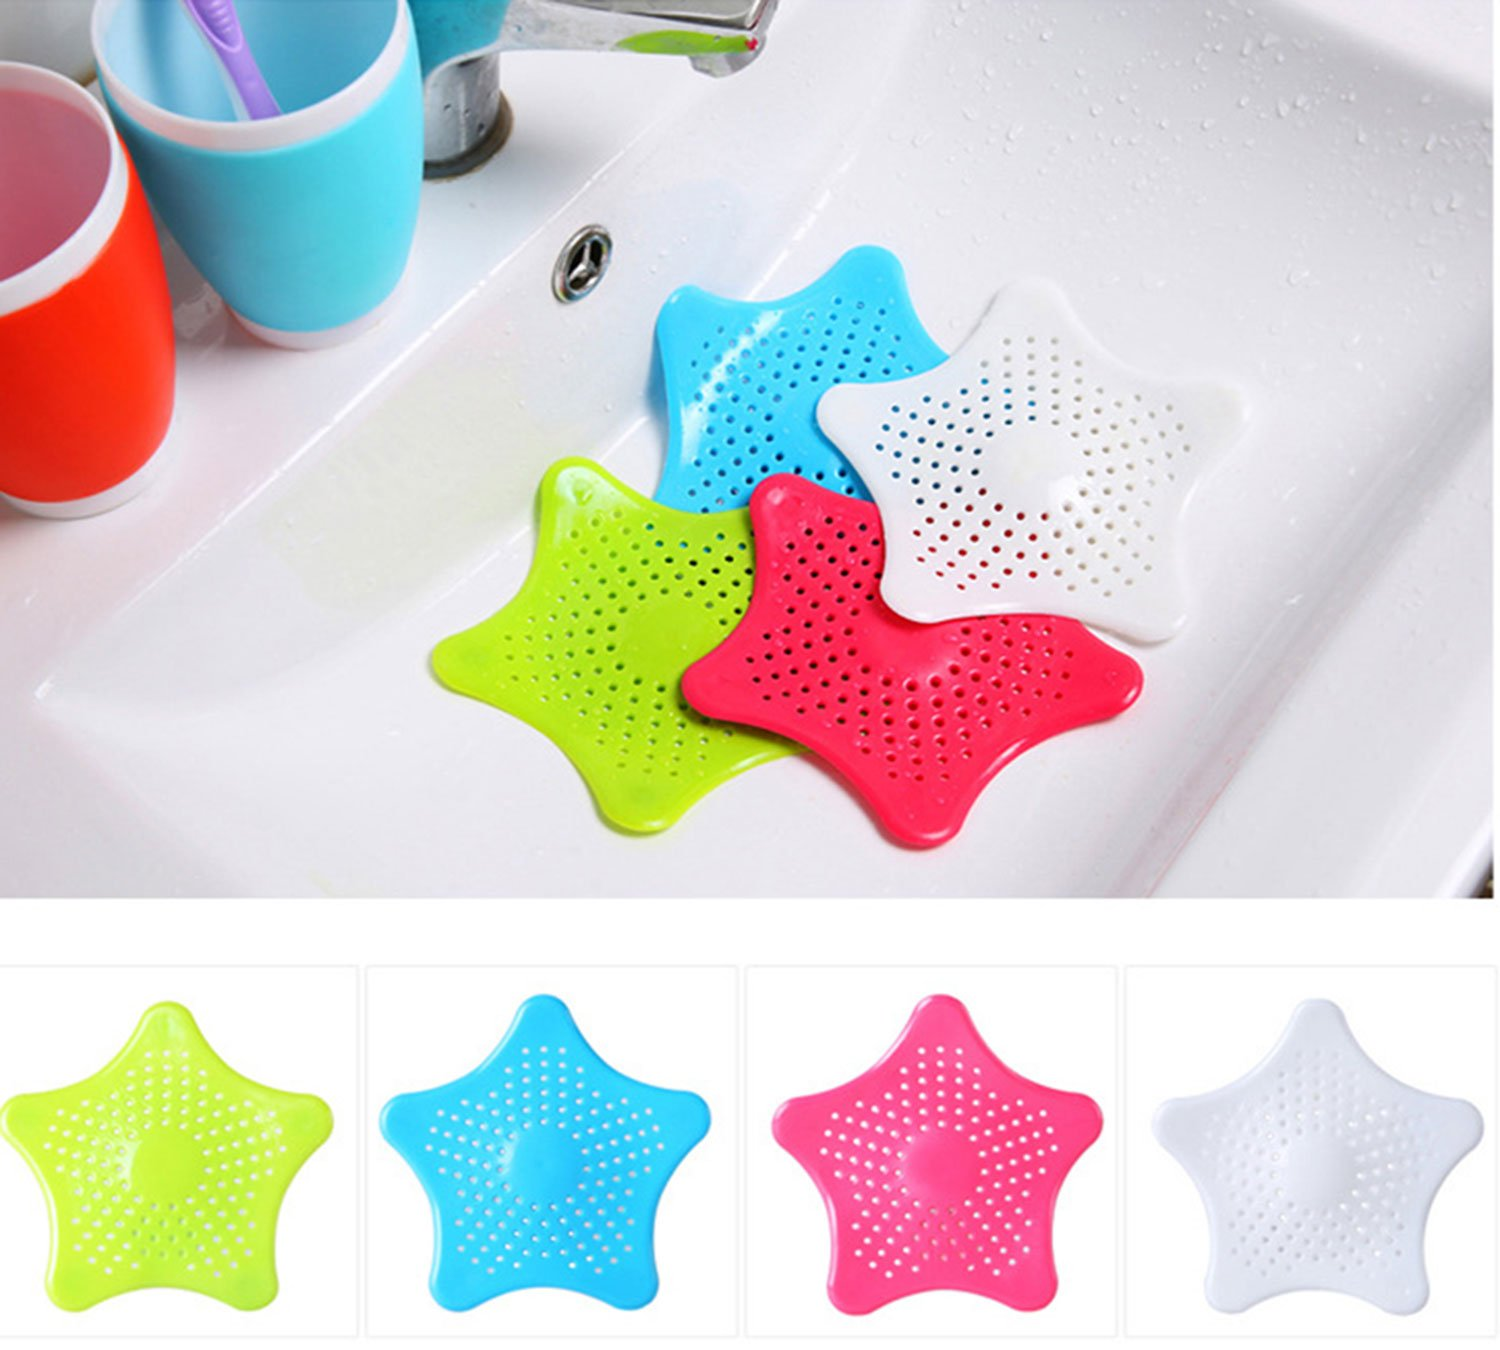 FANYI 1*4PCS Colorful Drain Hair Catcher Strong Suction Bath Stopper Strainer Filter Shower Cover Durable Outlet Hair Filtration Tub Drain Protector 15.2*15.2CM (Blue, Green, White, Rose Red) by FANYI FANYI iHOME